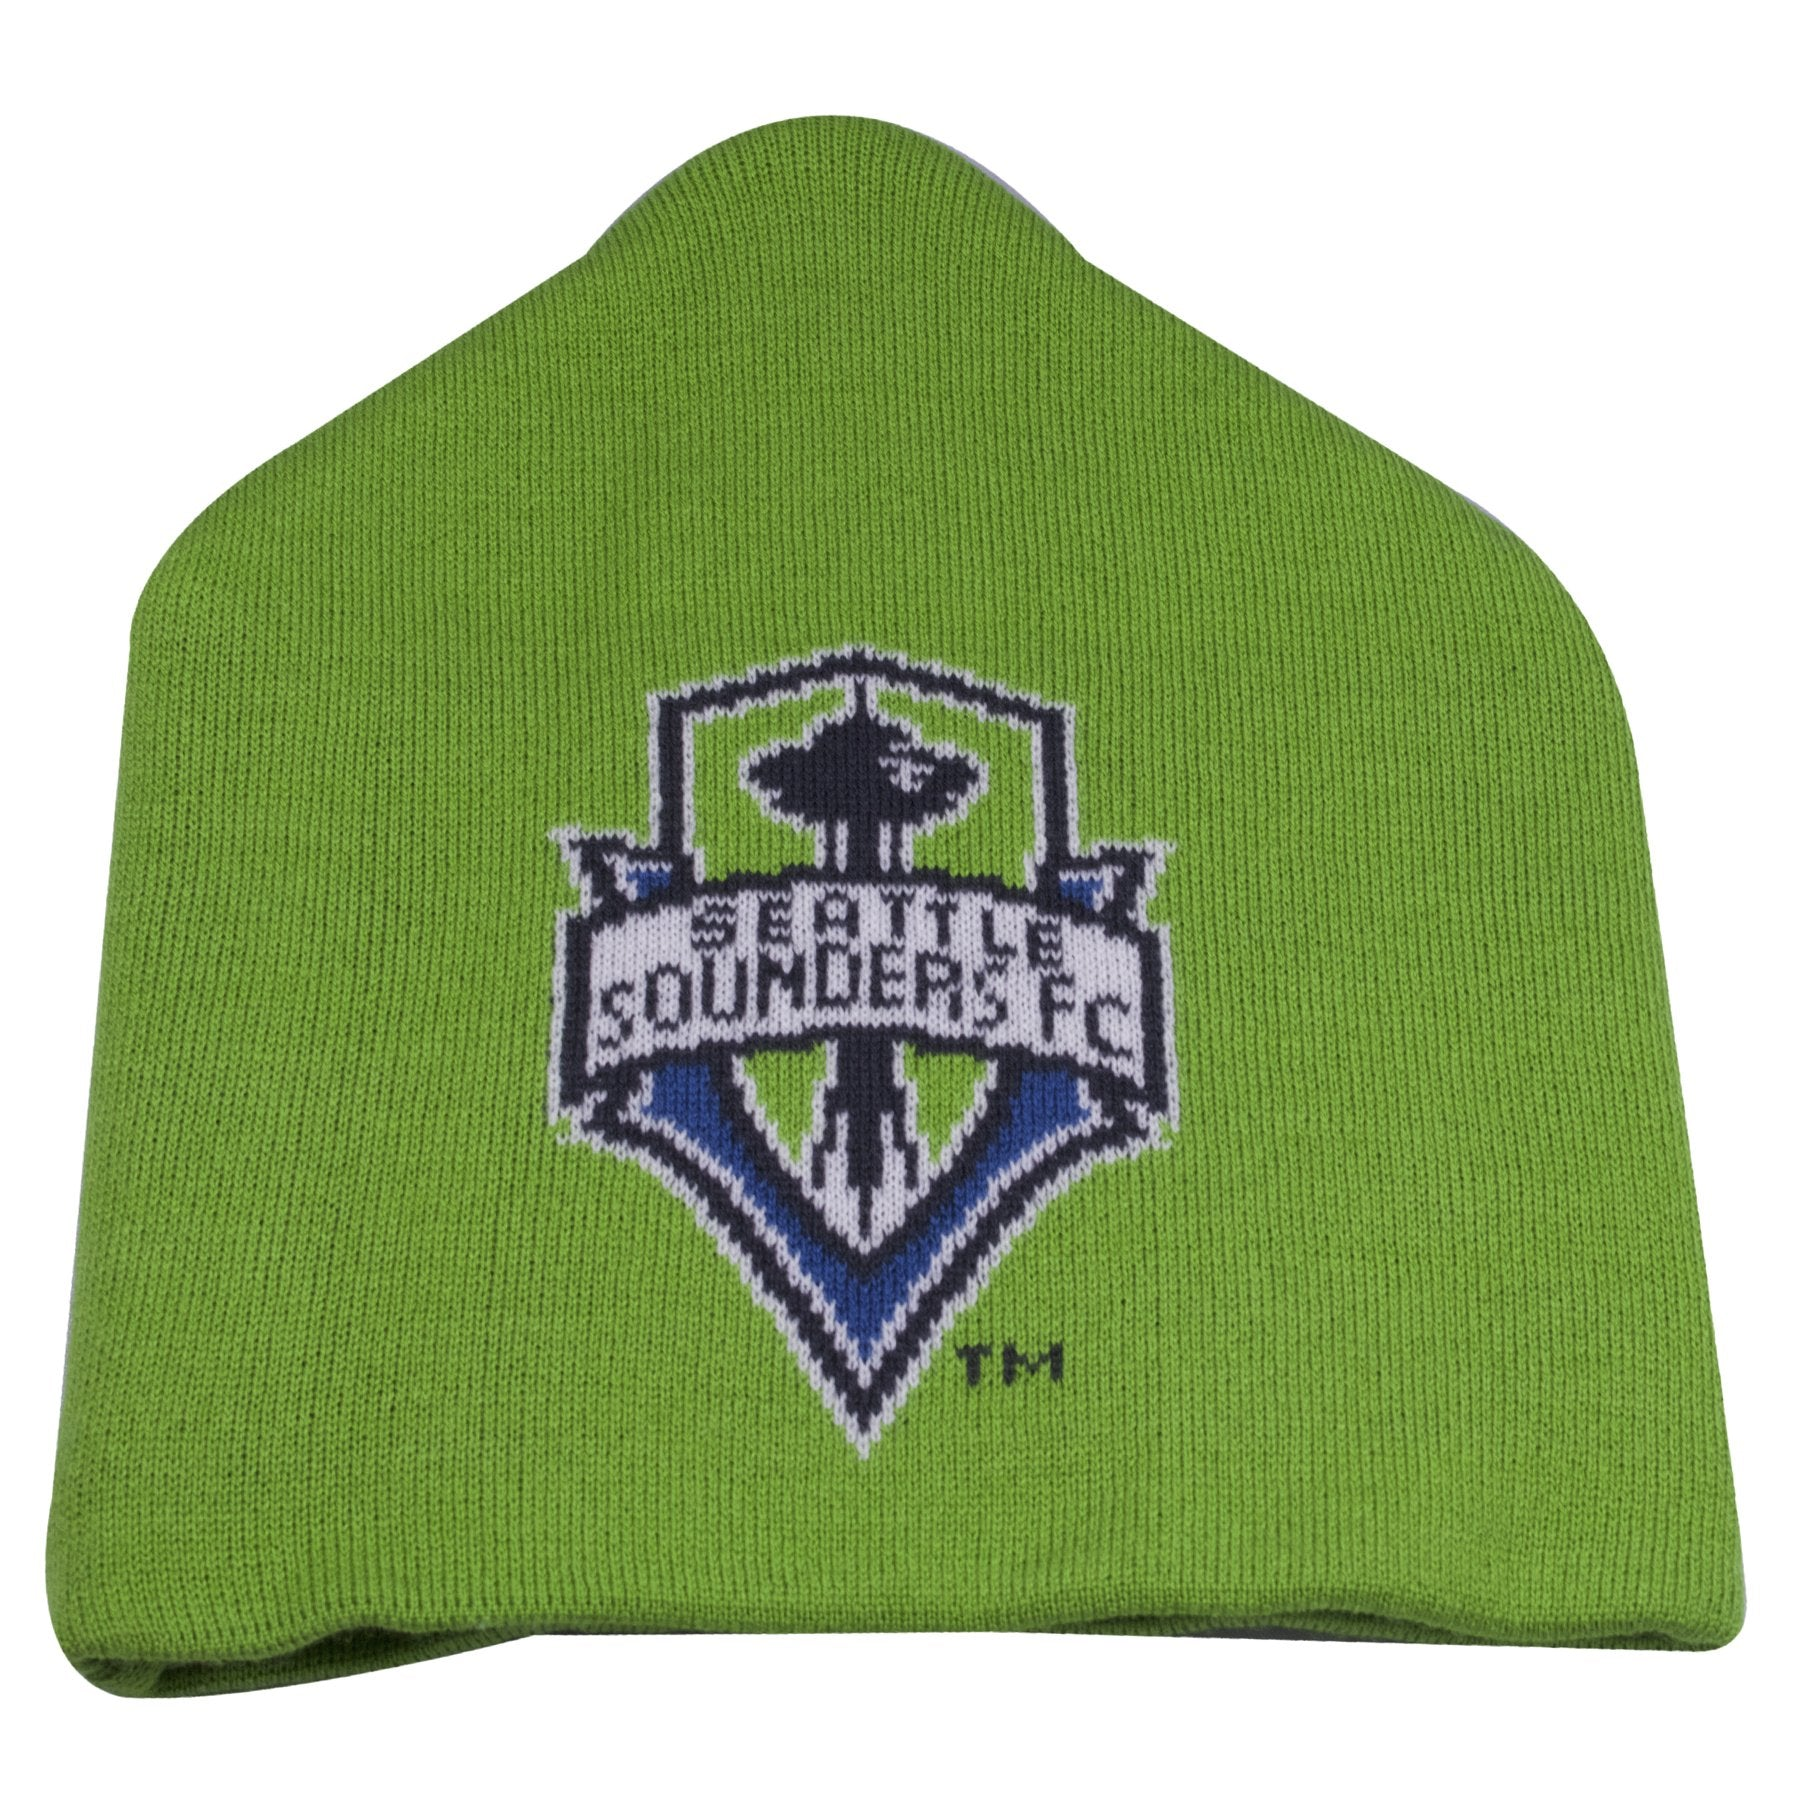 b701c7e4141 on the front of the seattle sounders fc winter beanie is the seattle  sounders fc logo